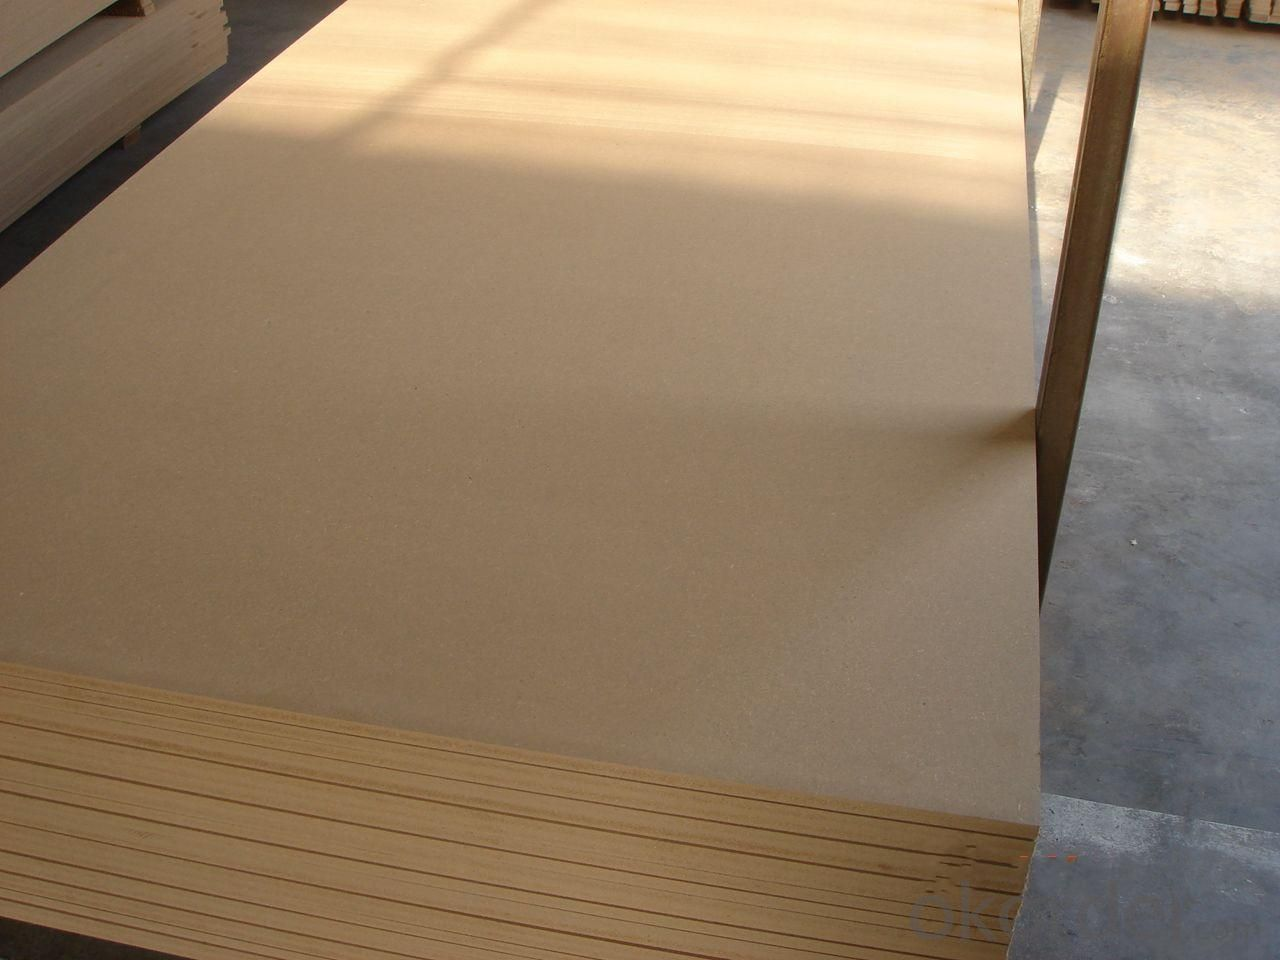 12mmE2 Grade Density Board Floor Material